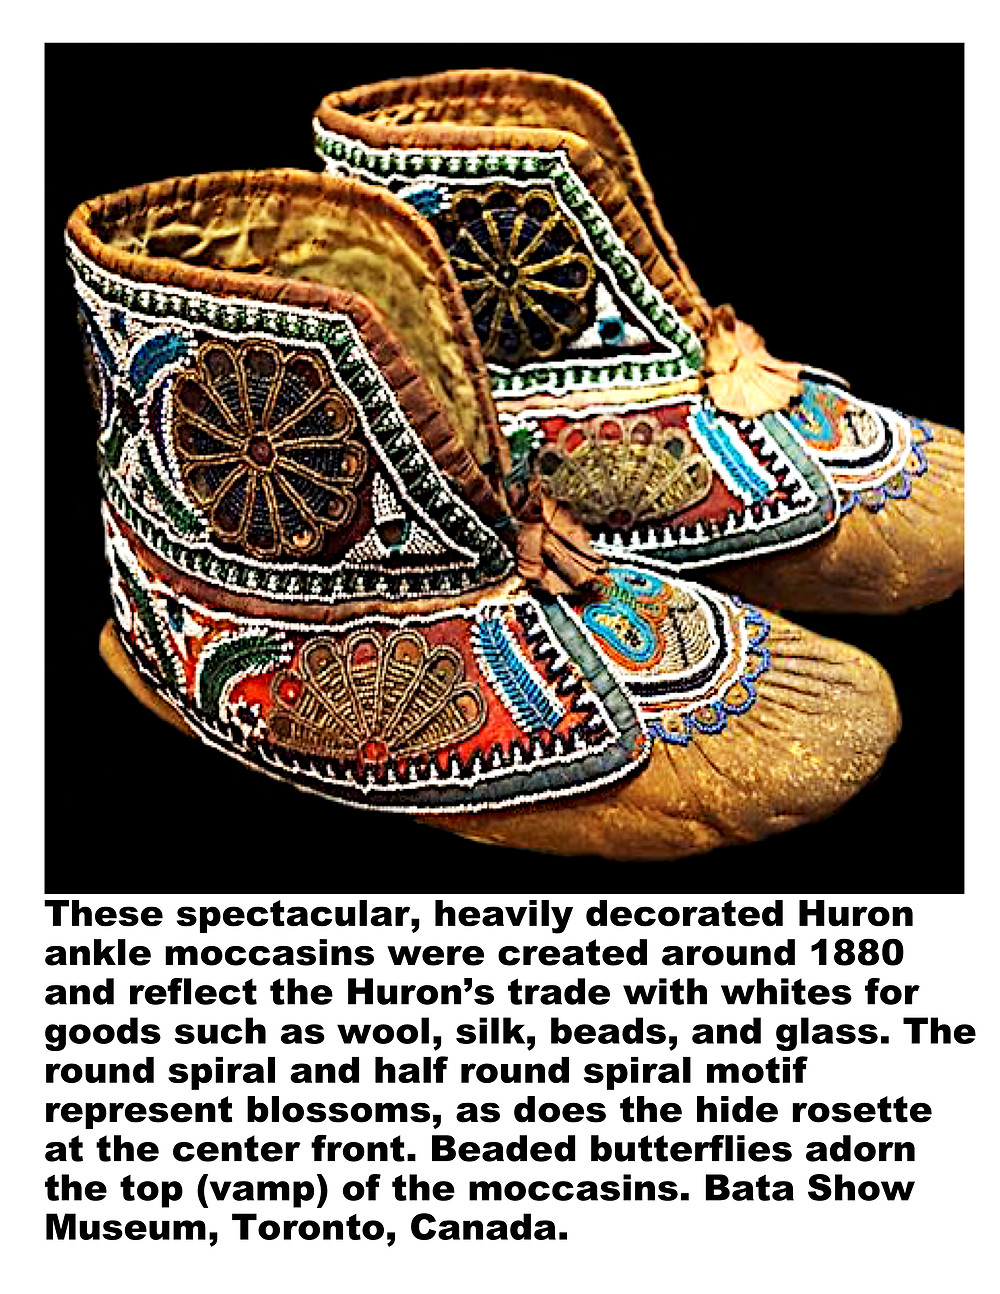 Huron ankle moccasins created around 1880.